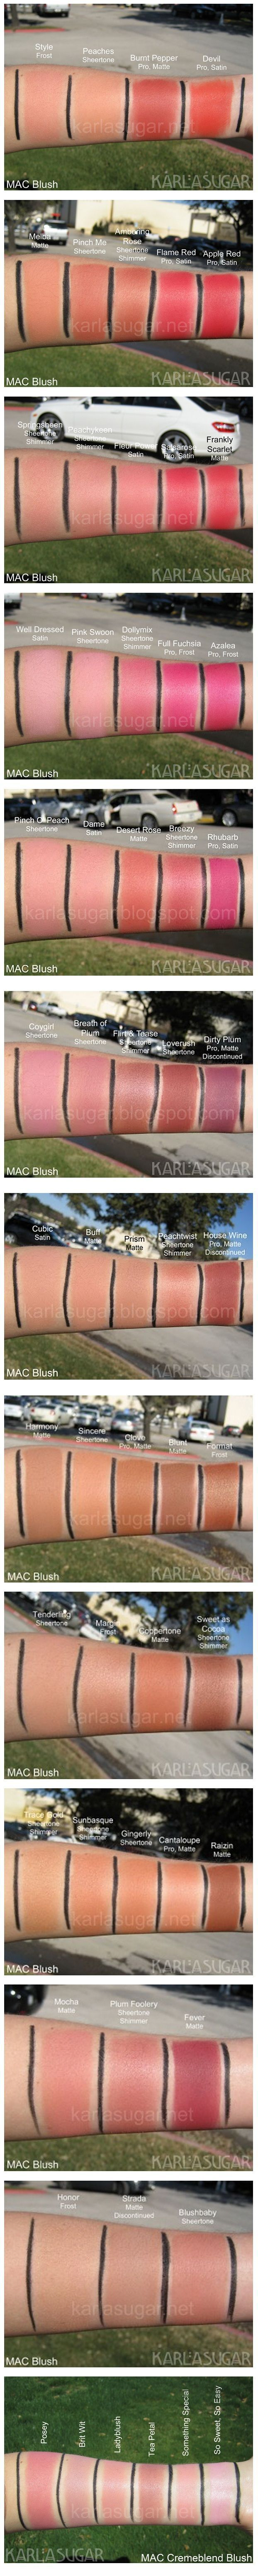 Karla Sugar Blog: MAC Blush Recap - An Ultimate MAC Sheertone and Cremeblend Blush Swatch. See it before you buy it. AMAZING!